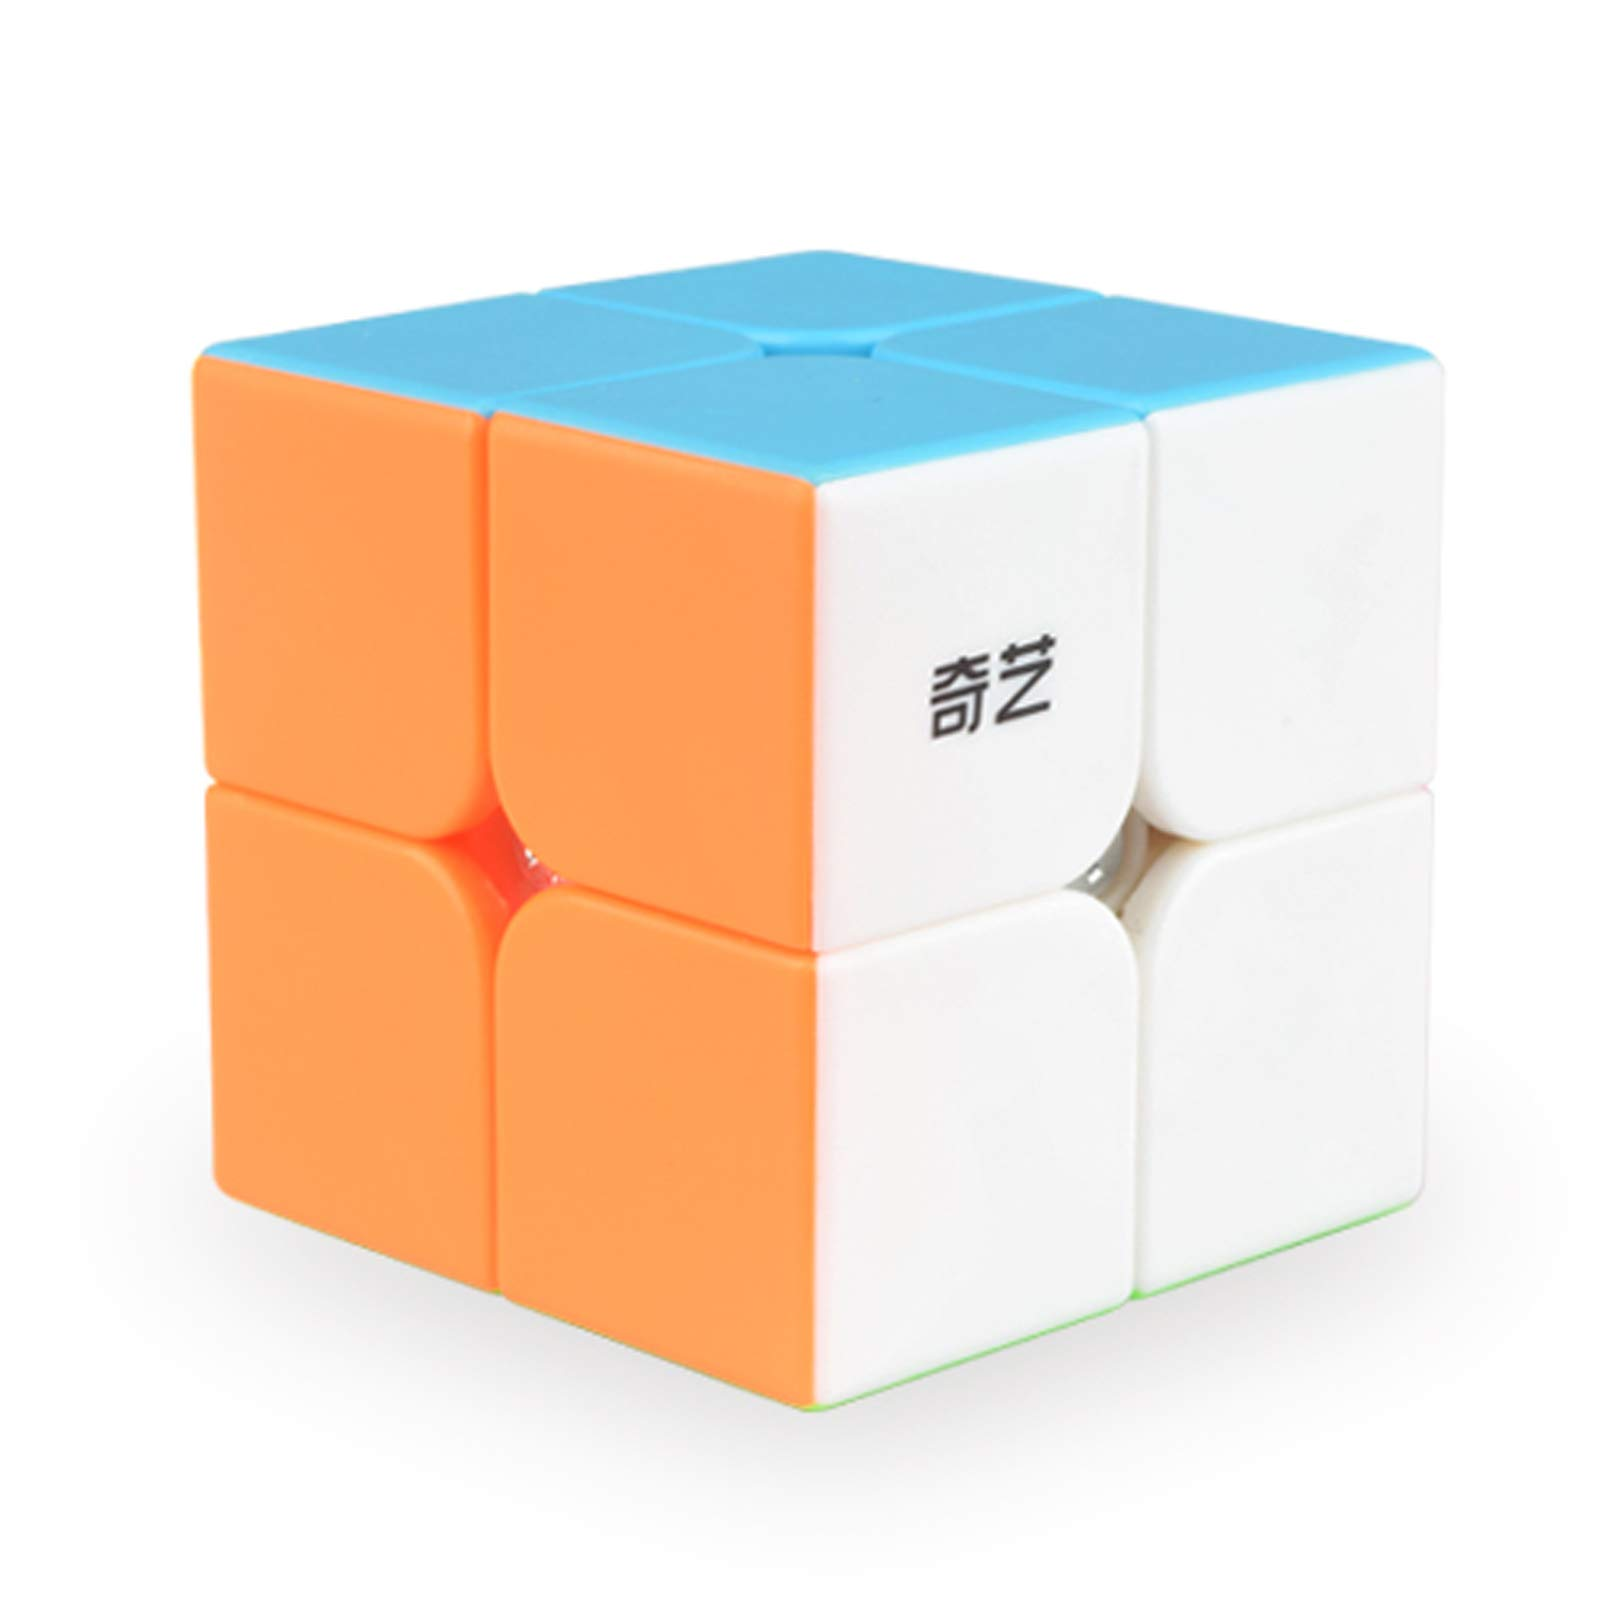 Little Golden Elephant Qiyi Qidi Speed Cube 2x2- Stickerless Magic Cube 2x2x2 Puzzles Toys (50mm), The Most Educational Toy to Effectively Improve Your Child's Concentration, responsiveness and Memory